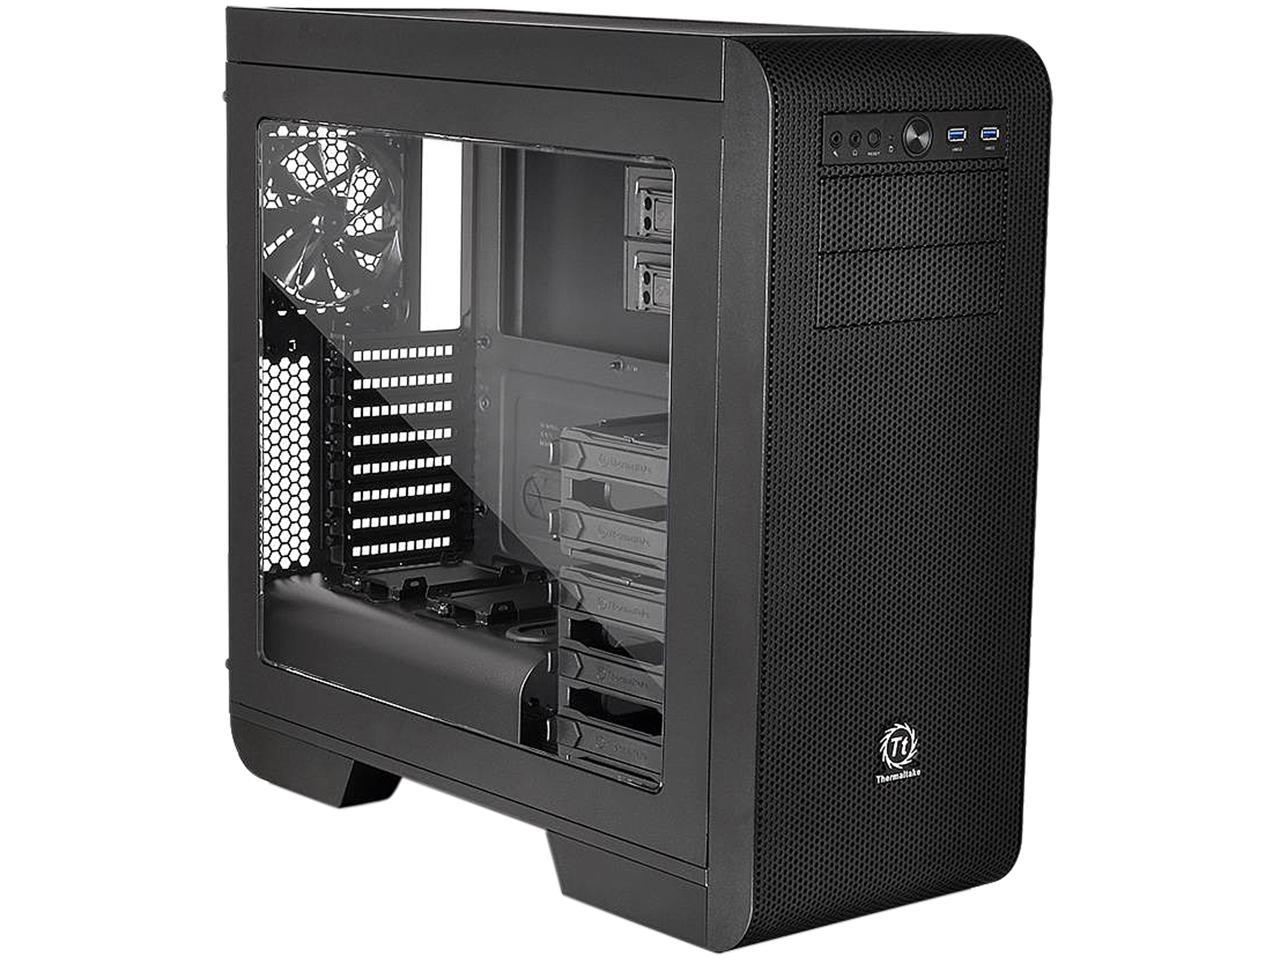 Thermaltake Core V51 ATX Full Tower Gaming Computer Case Chassis